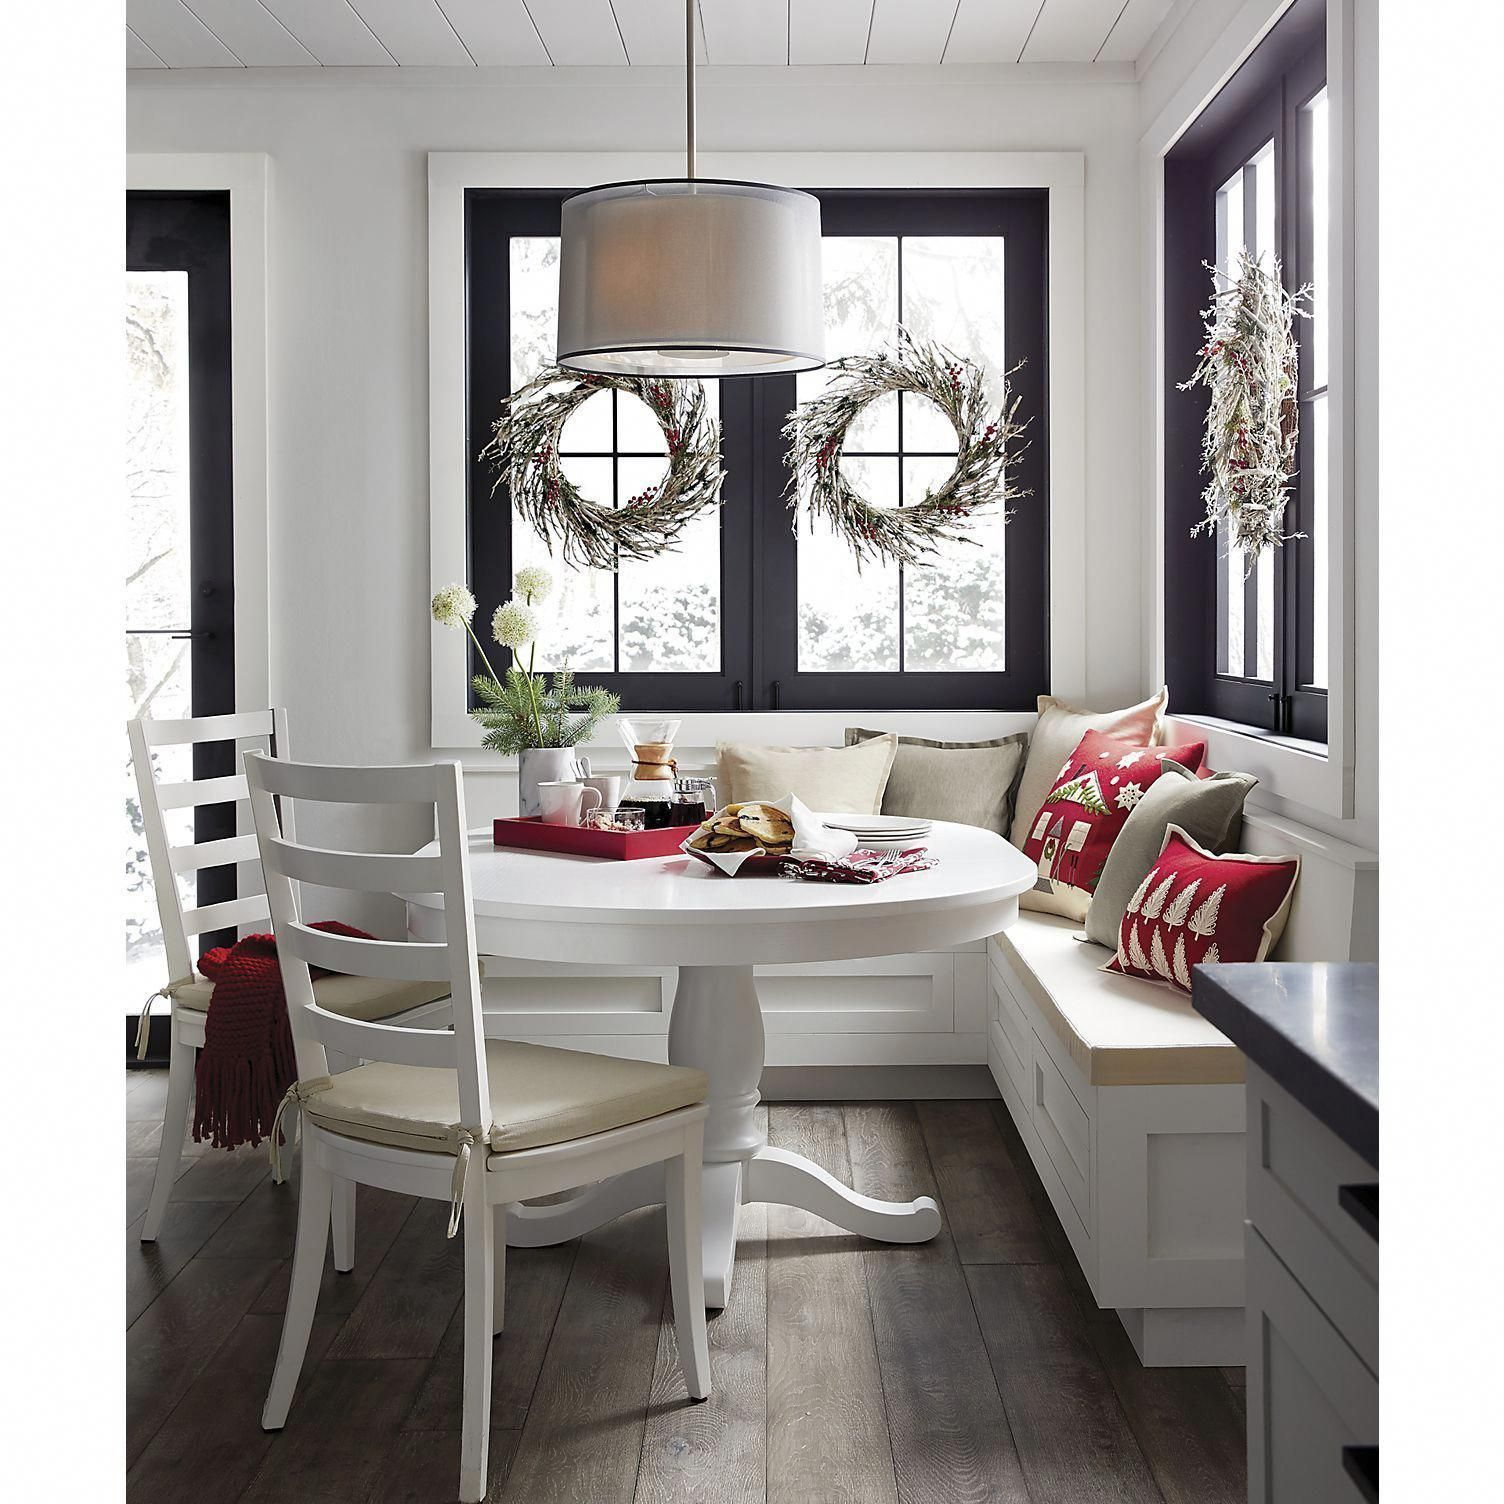 50 Fabulous Finds For Bookshelf Ideas With Images Banquette